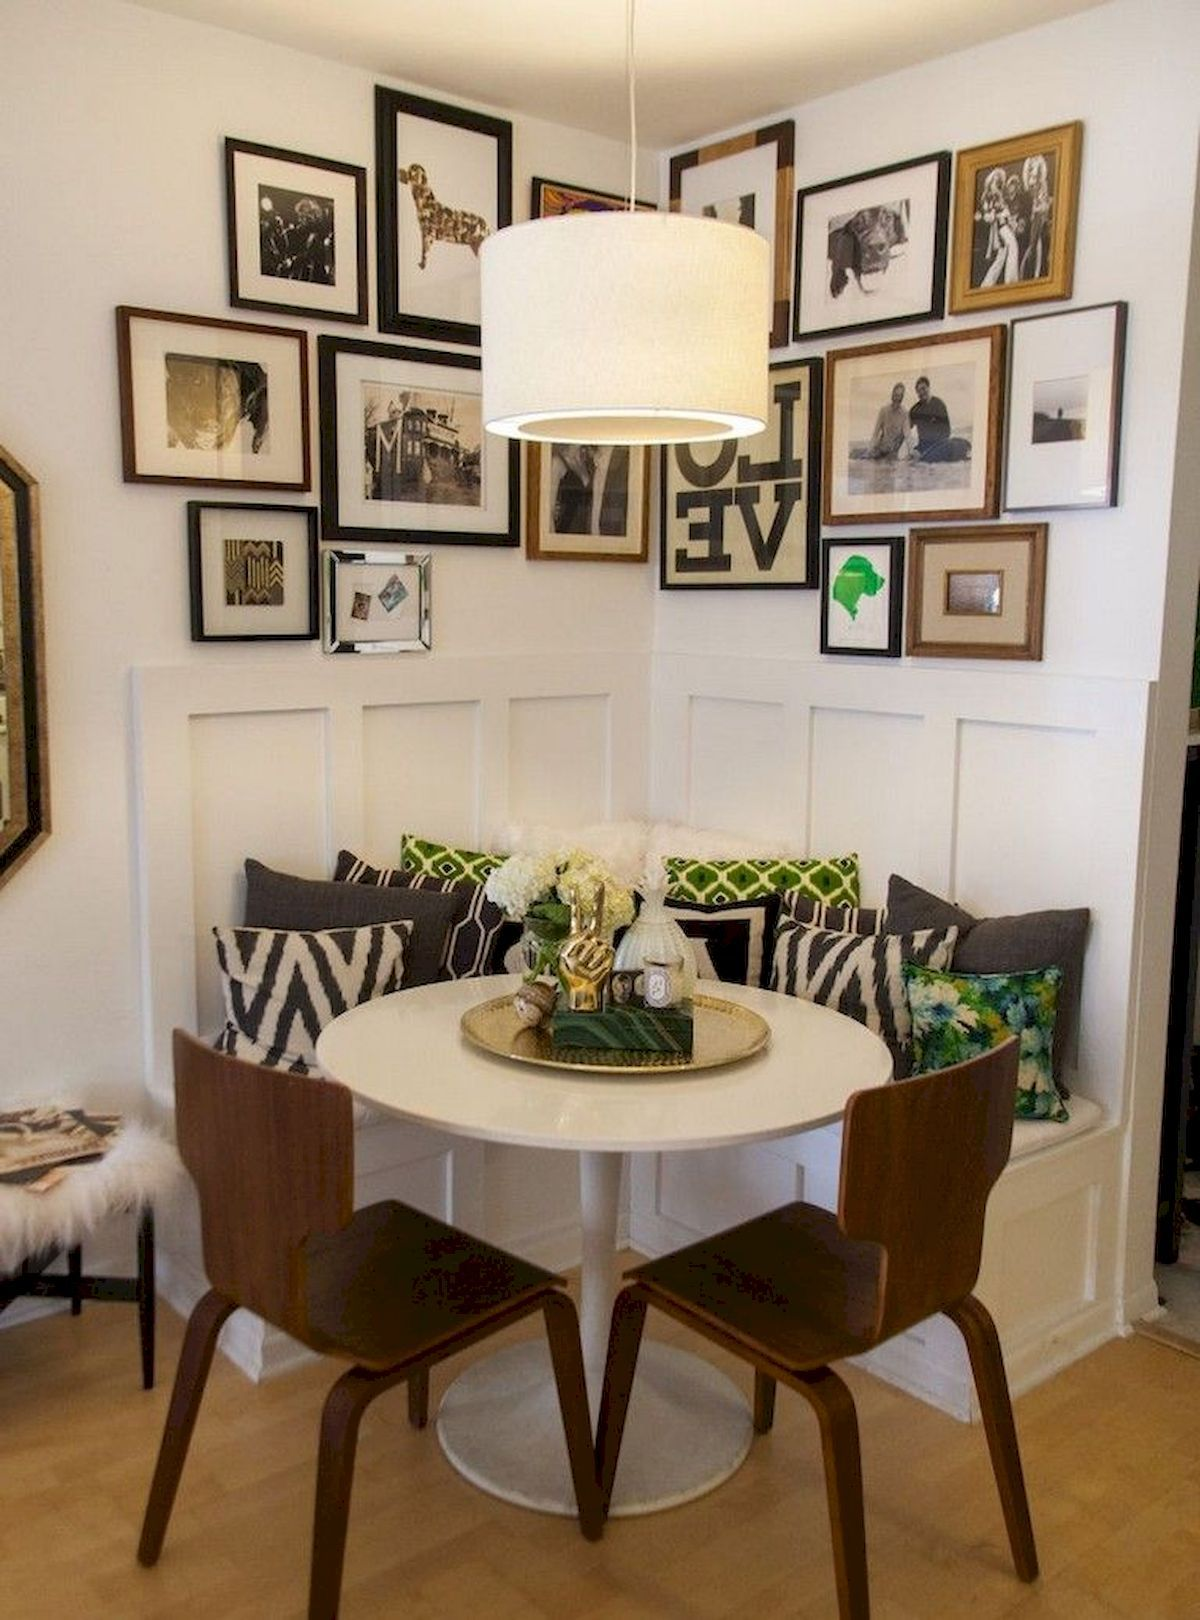 52 Beautiful Small Dining Room Ideas On A Budget Shairoom Com